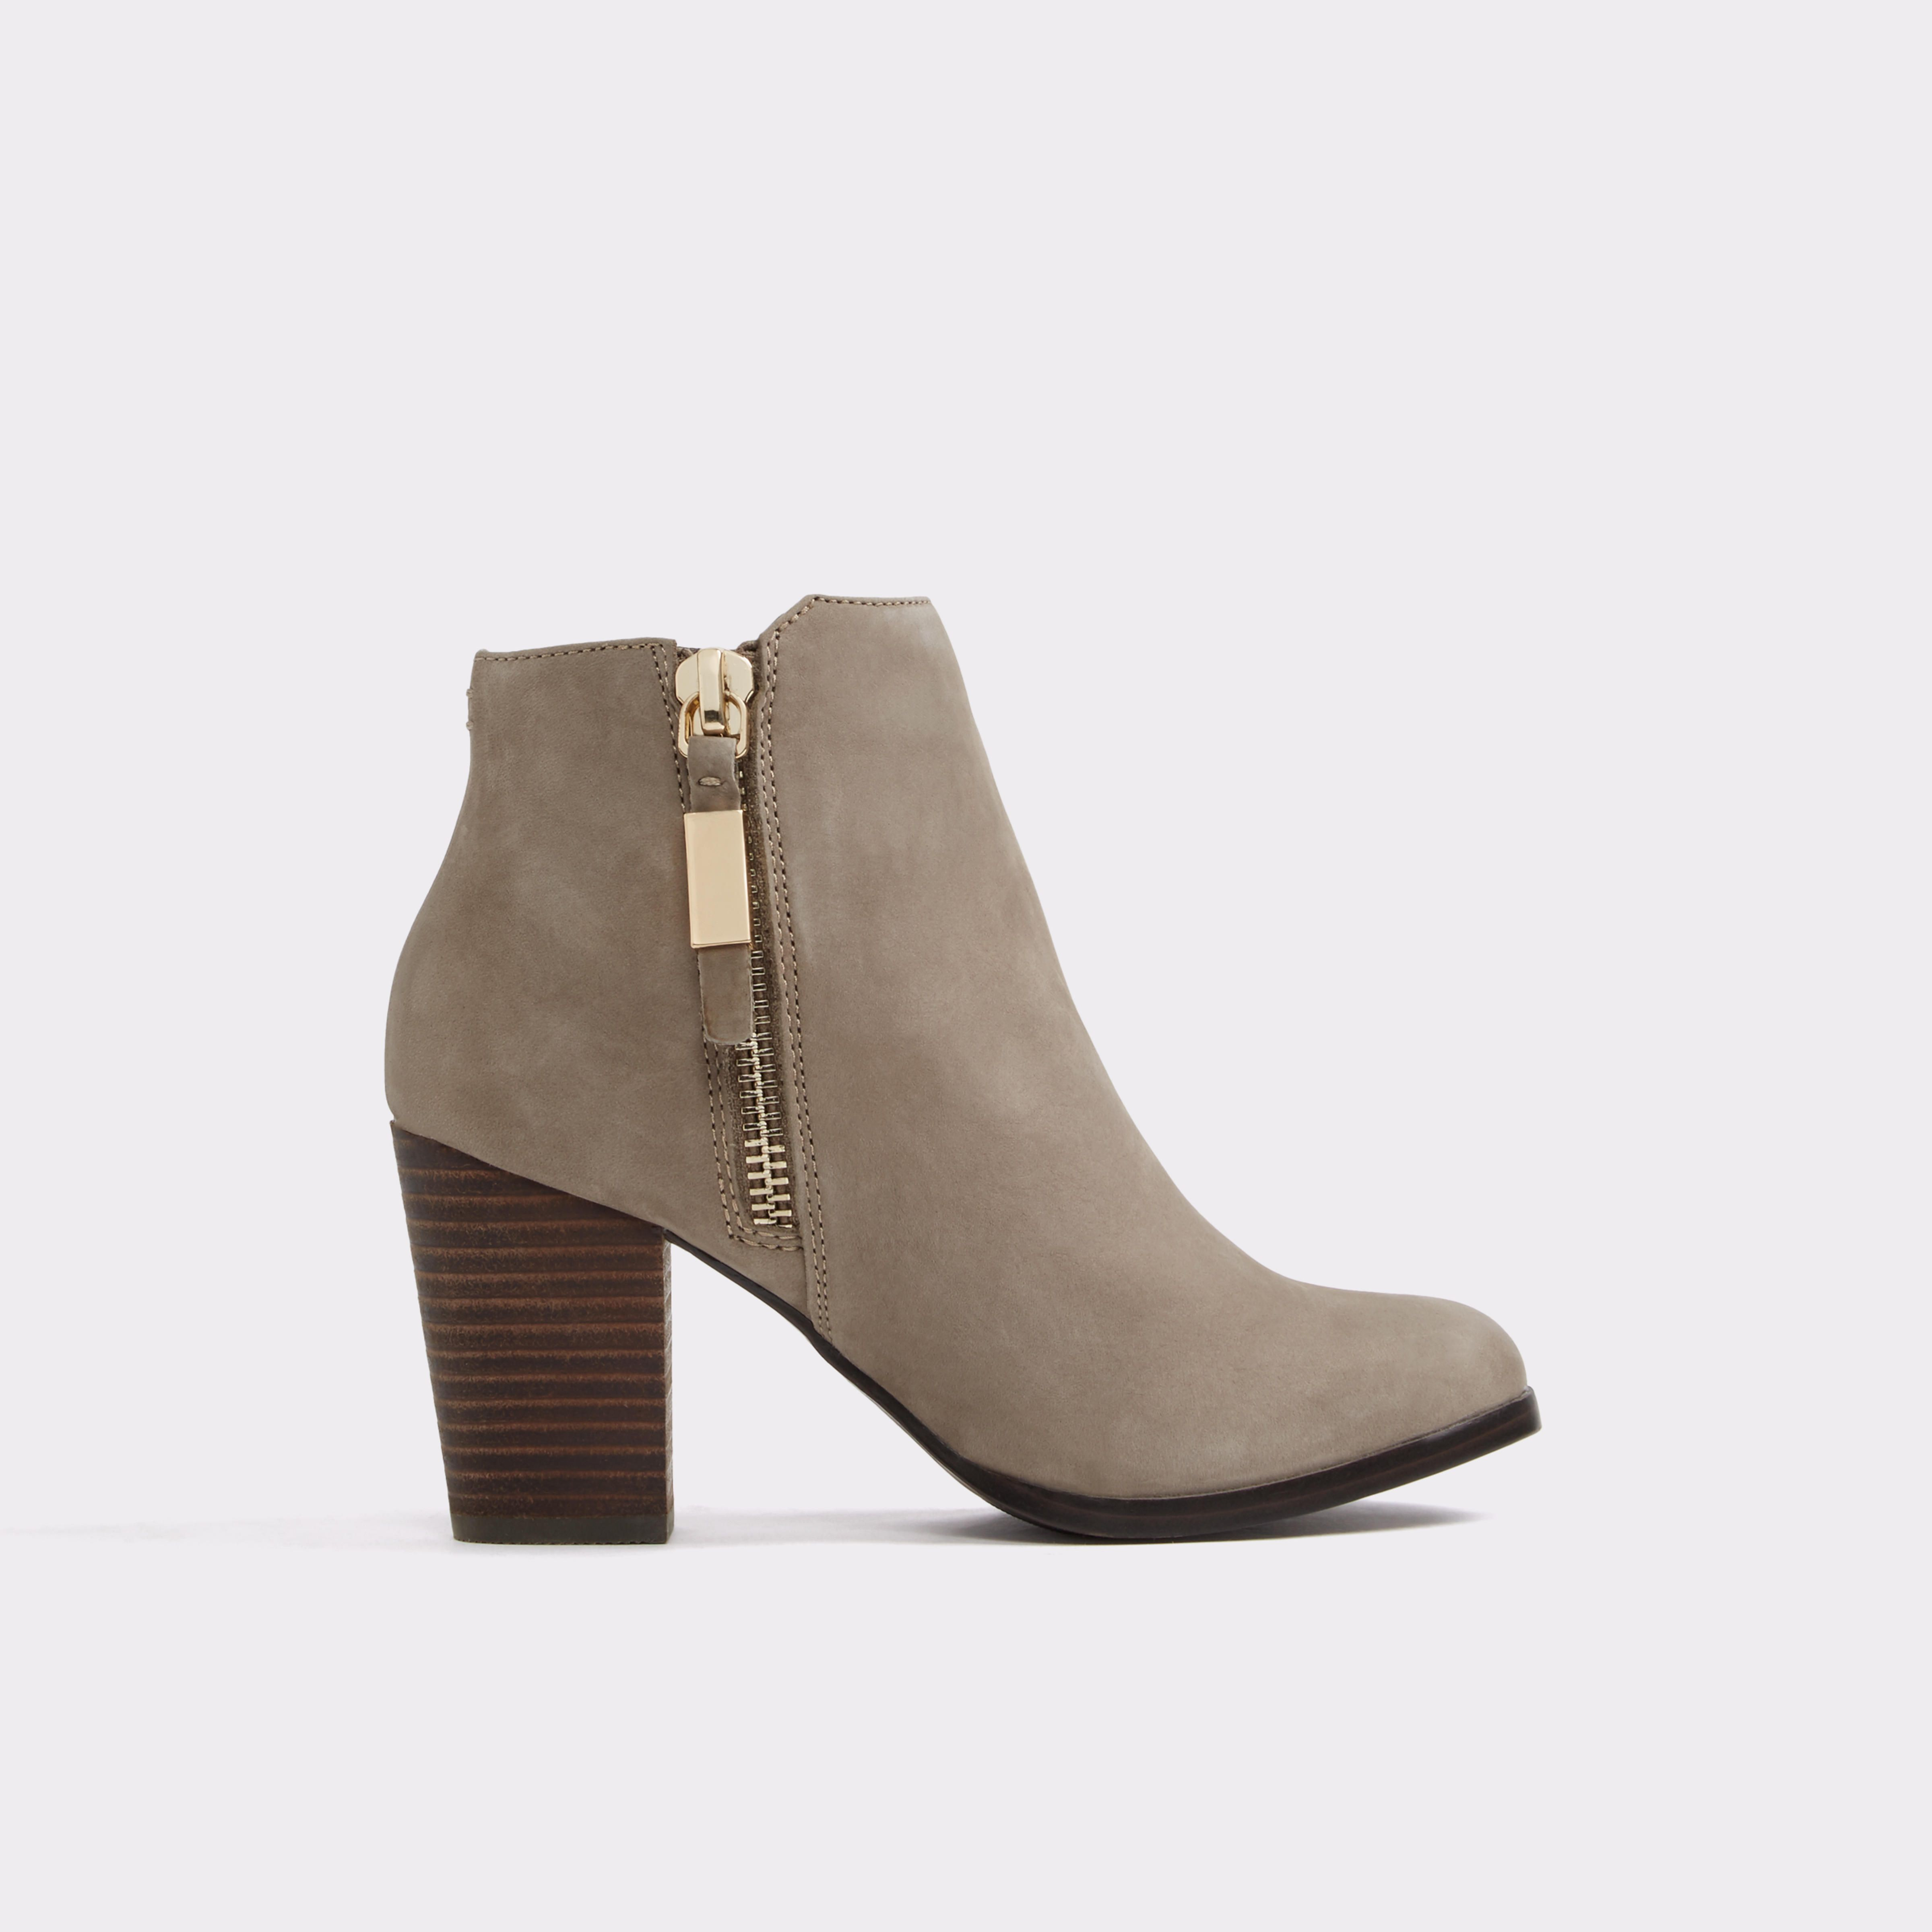 Mathia Grey Women's Ankle boots | ALDO Canada | Brown boots